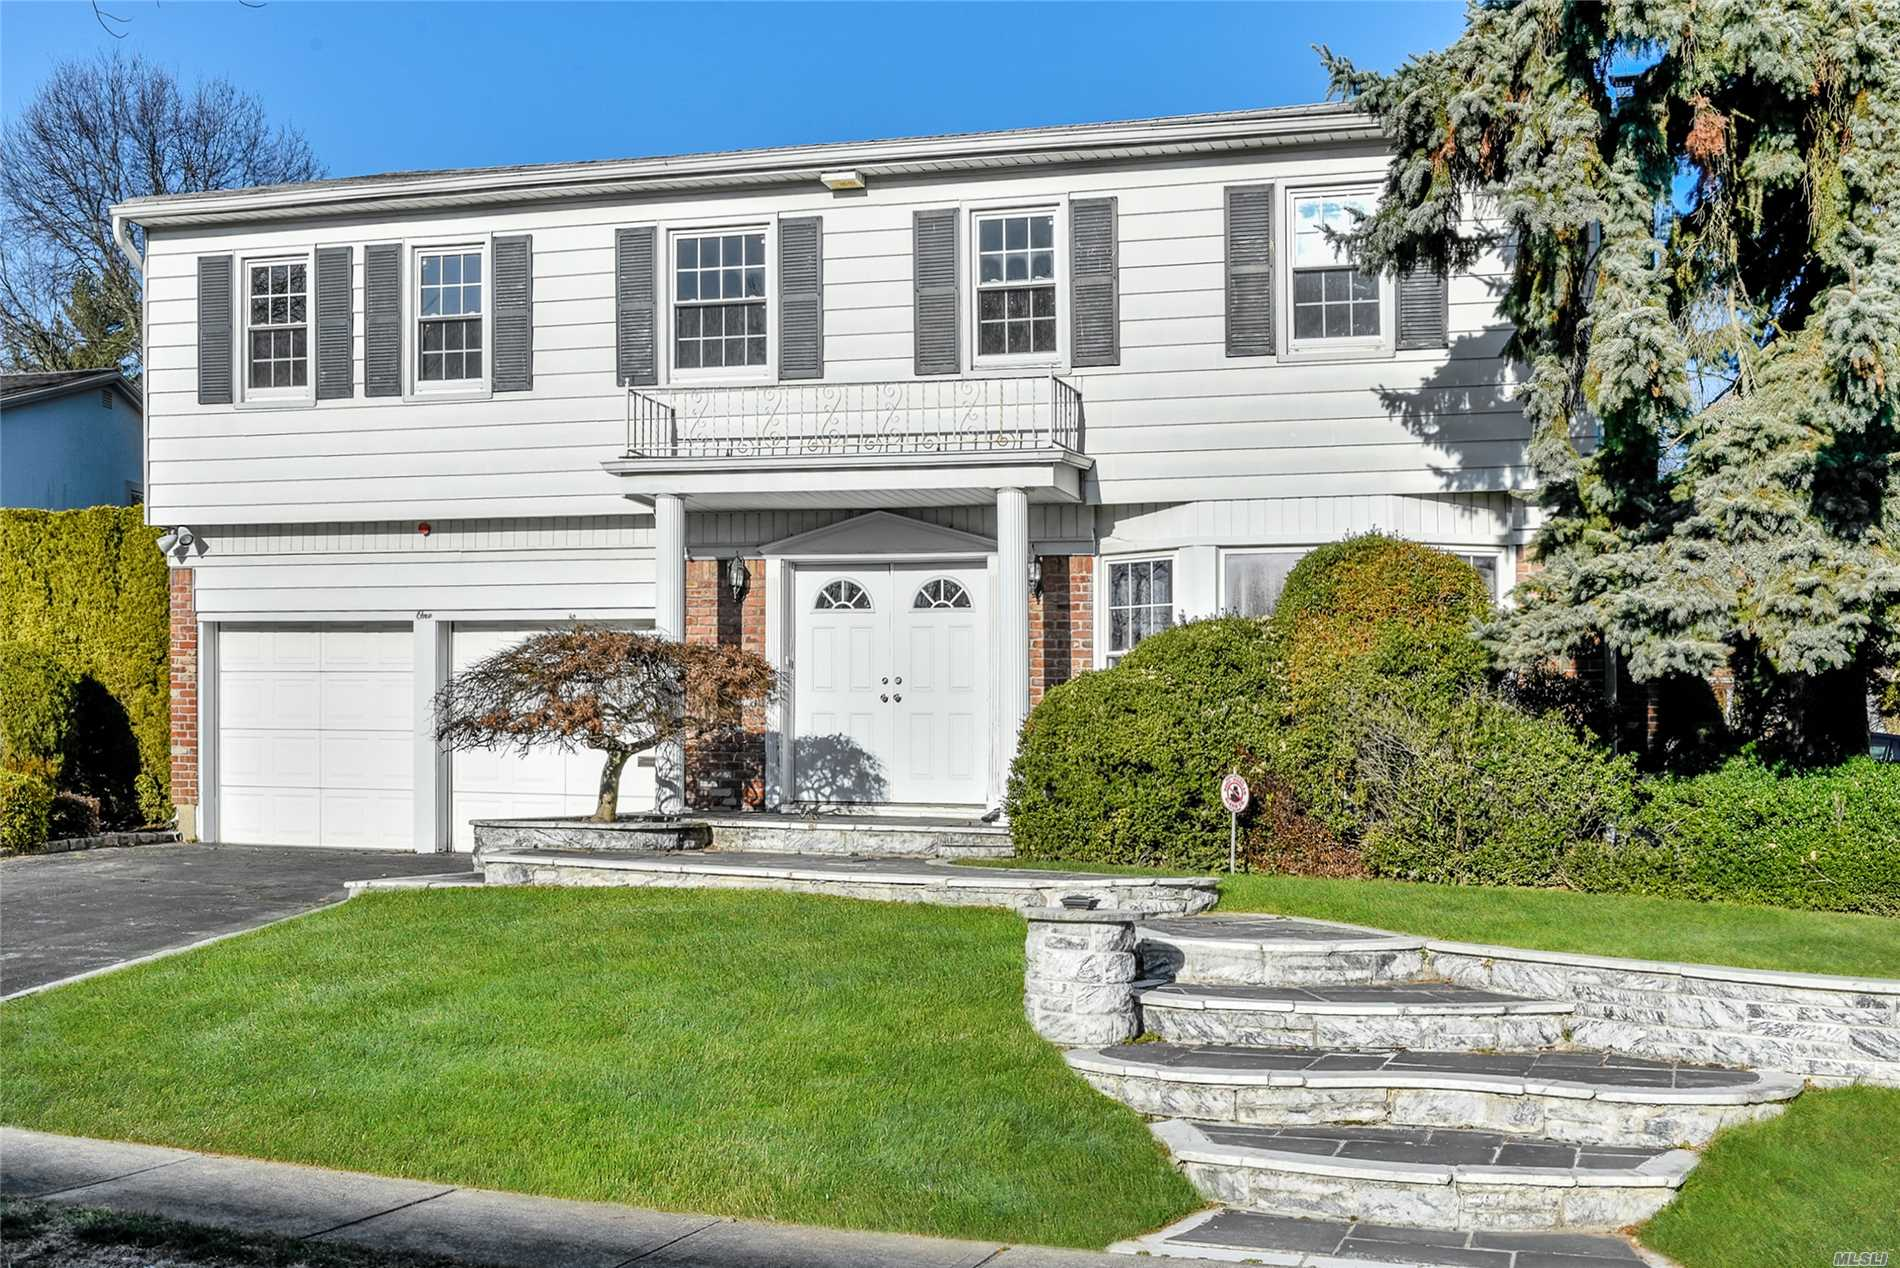 Prime Location Of Manhasset Hills Features Beautiful Living Room With Fireplace,  Dining Rm, Master Suit W/Full Bath. 3 Additional Bedrooms & Full Bath. Excellent Condition!